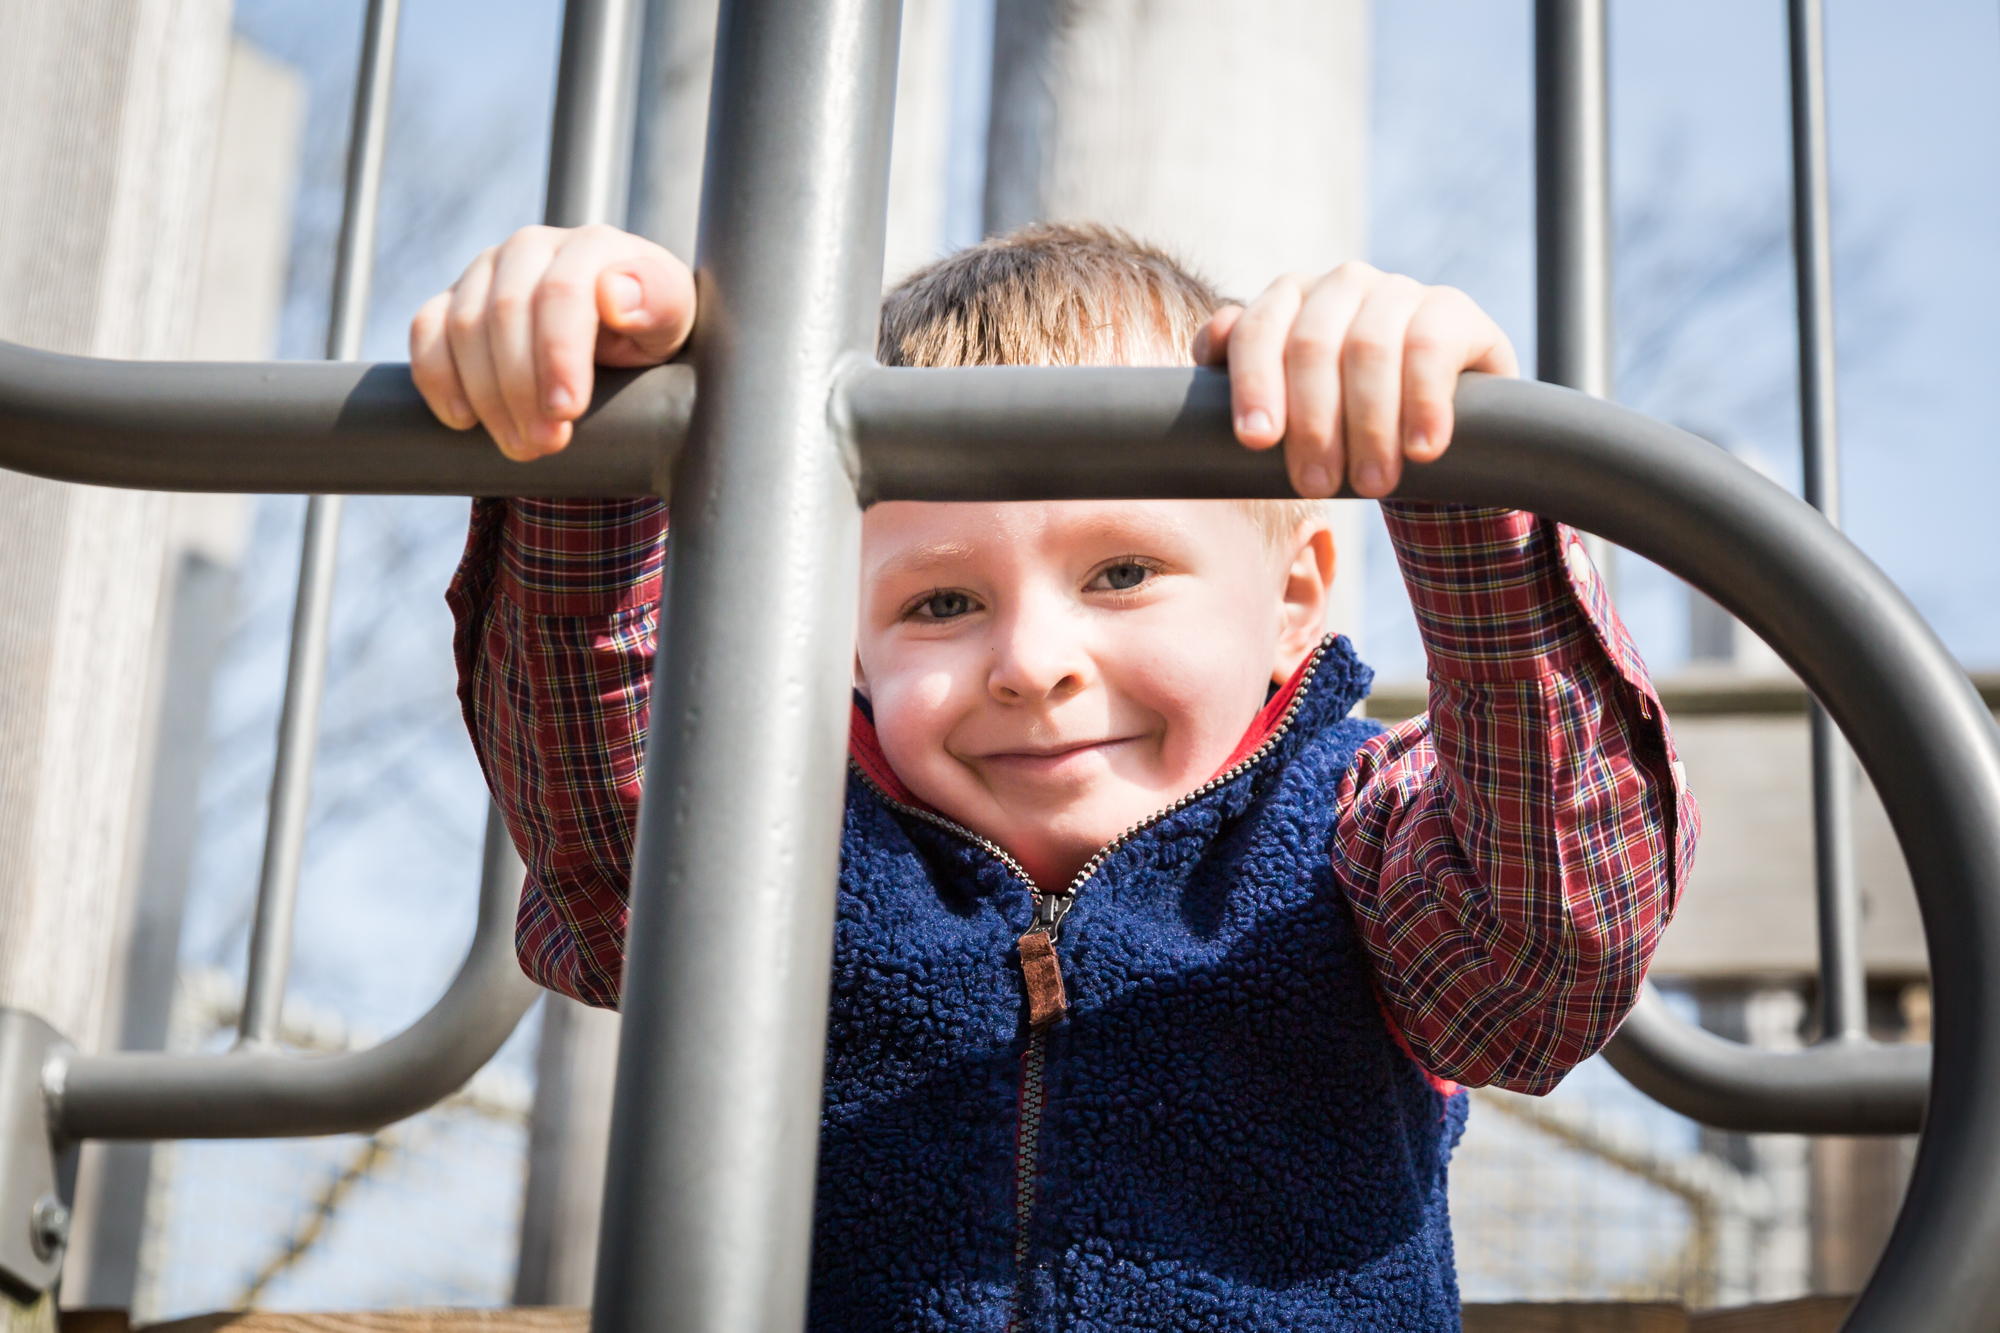 Child on playground equipment for an article on the best family portrait poses